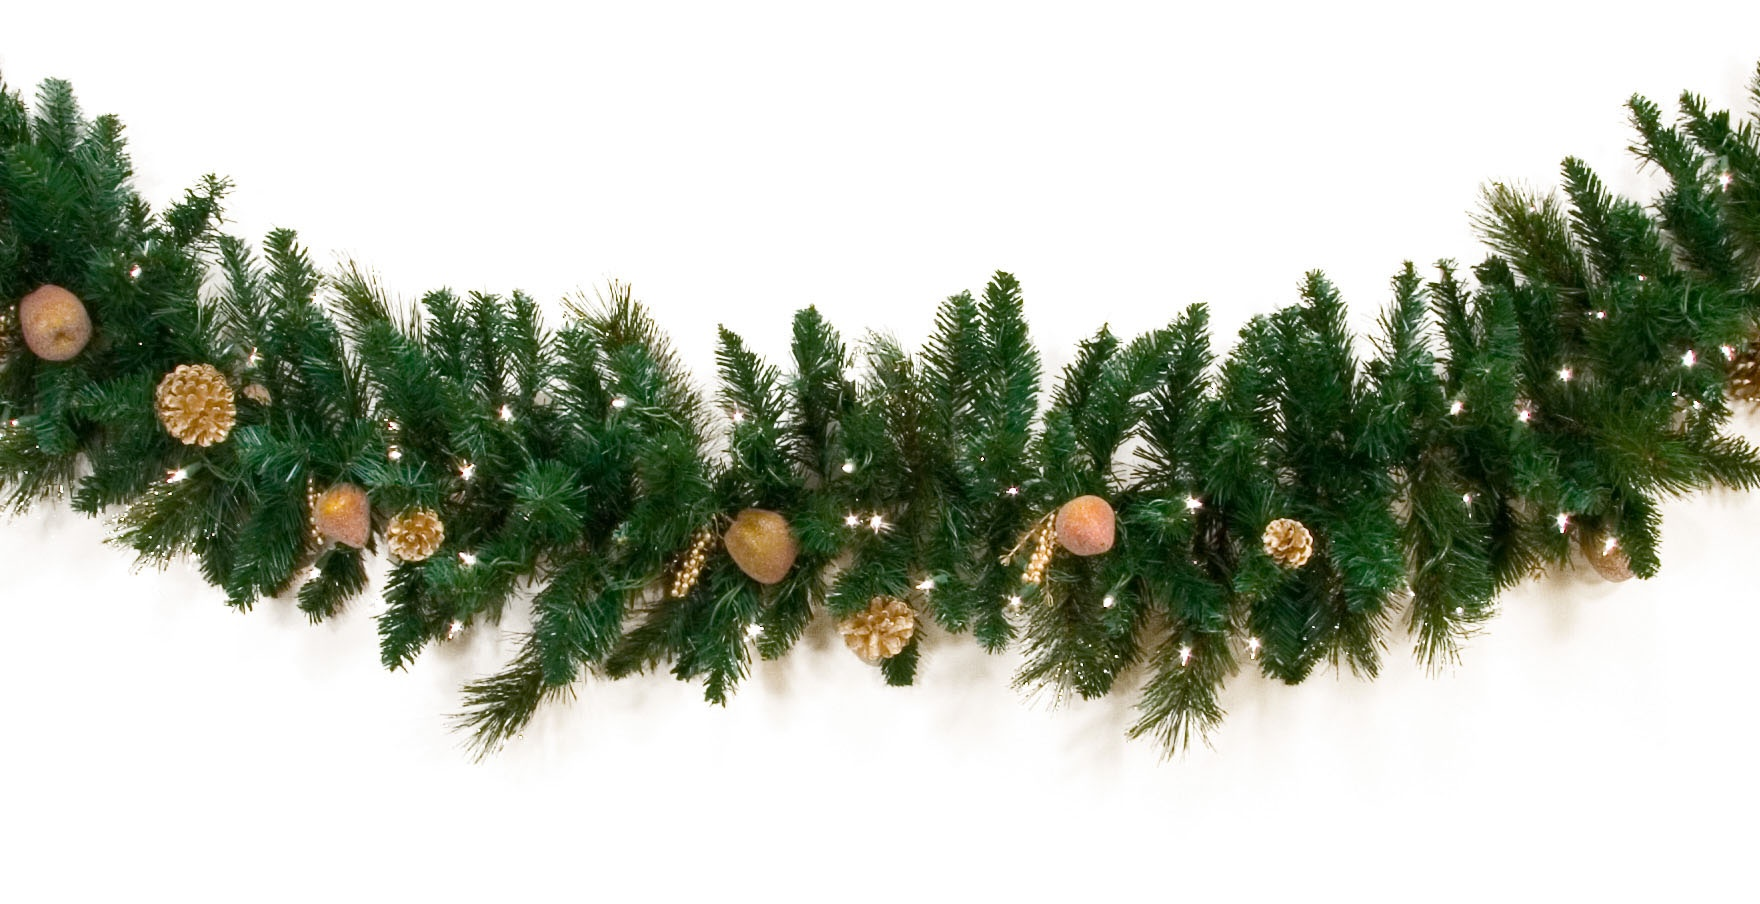 Decorative Garland - Harvest Gold Deluxe Prelit Christmas Garland, Clear Lights